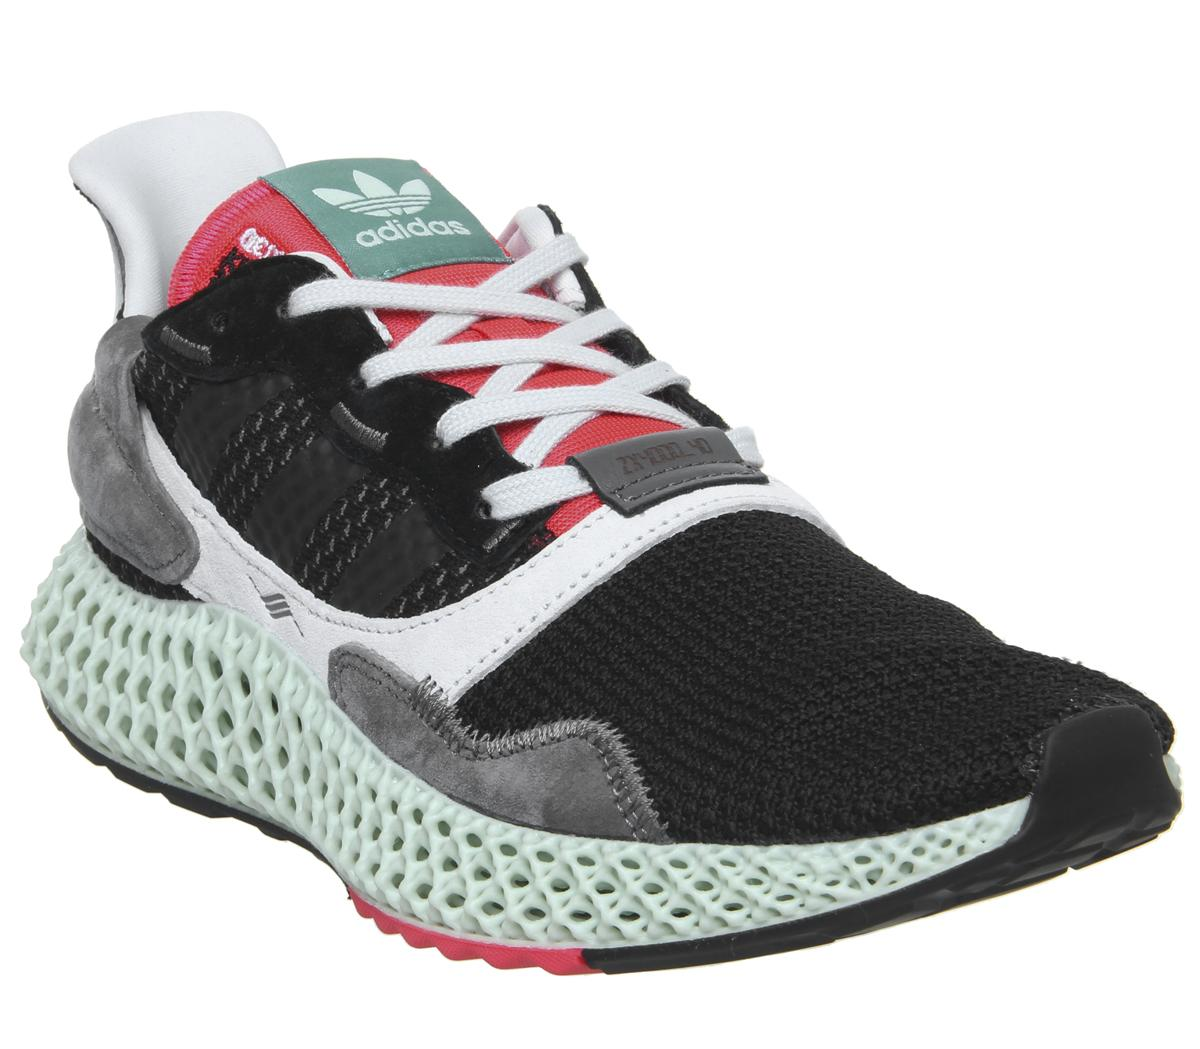 Zx 4000 Trainers